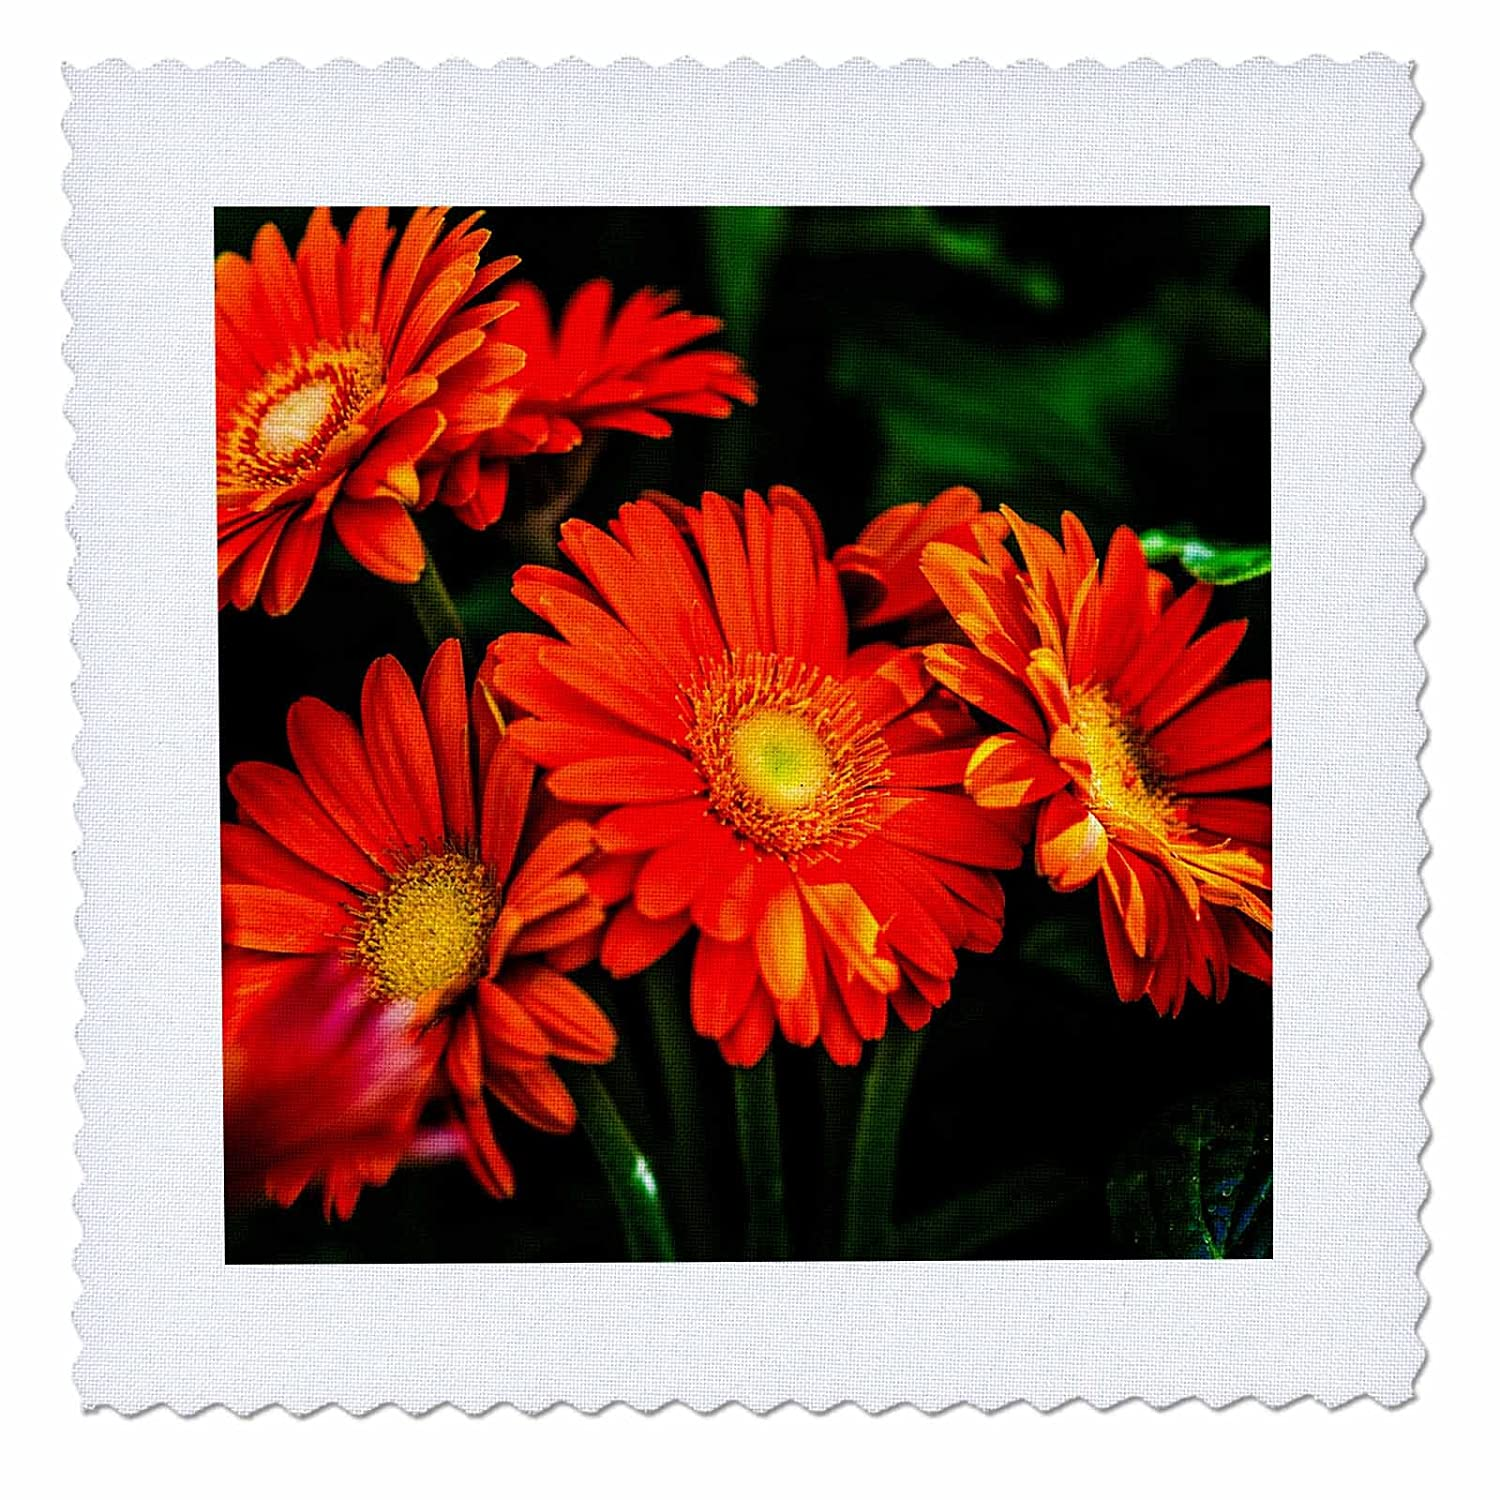 High quality 3drose alexis photography flowers daisy group of high quality 3drose alexis photography flowers daisy group of red daisy flowers izmirmasajfo